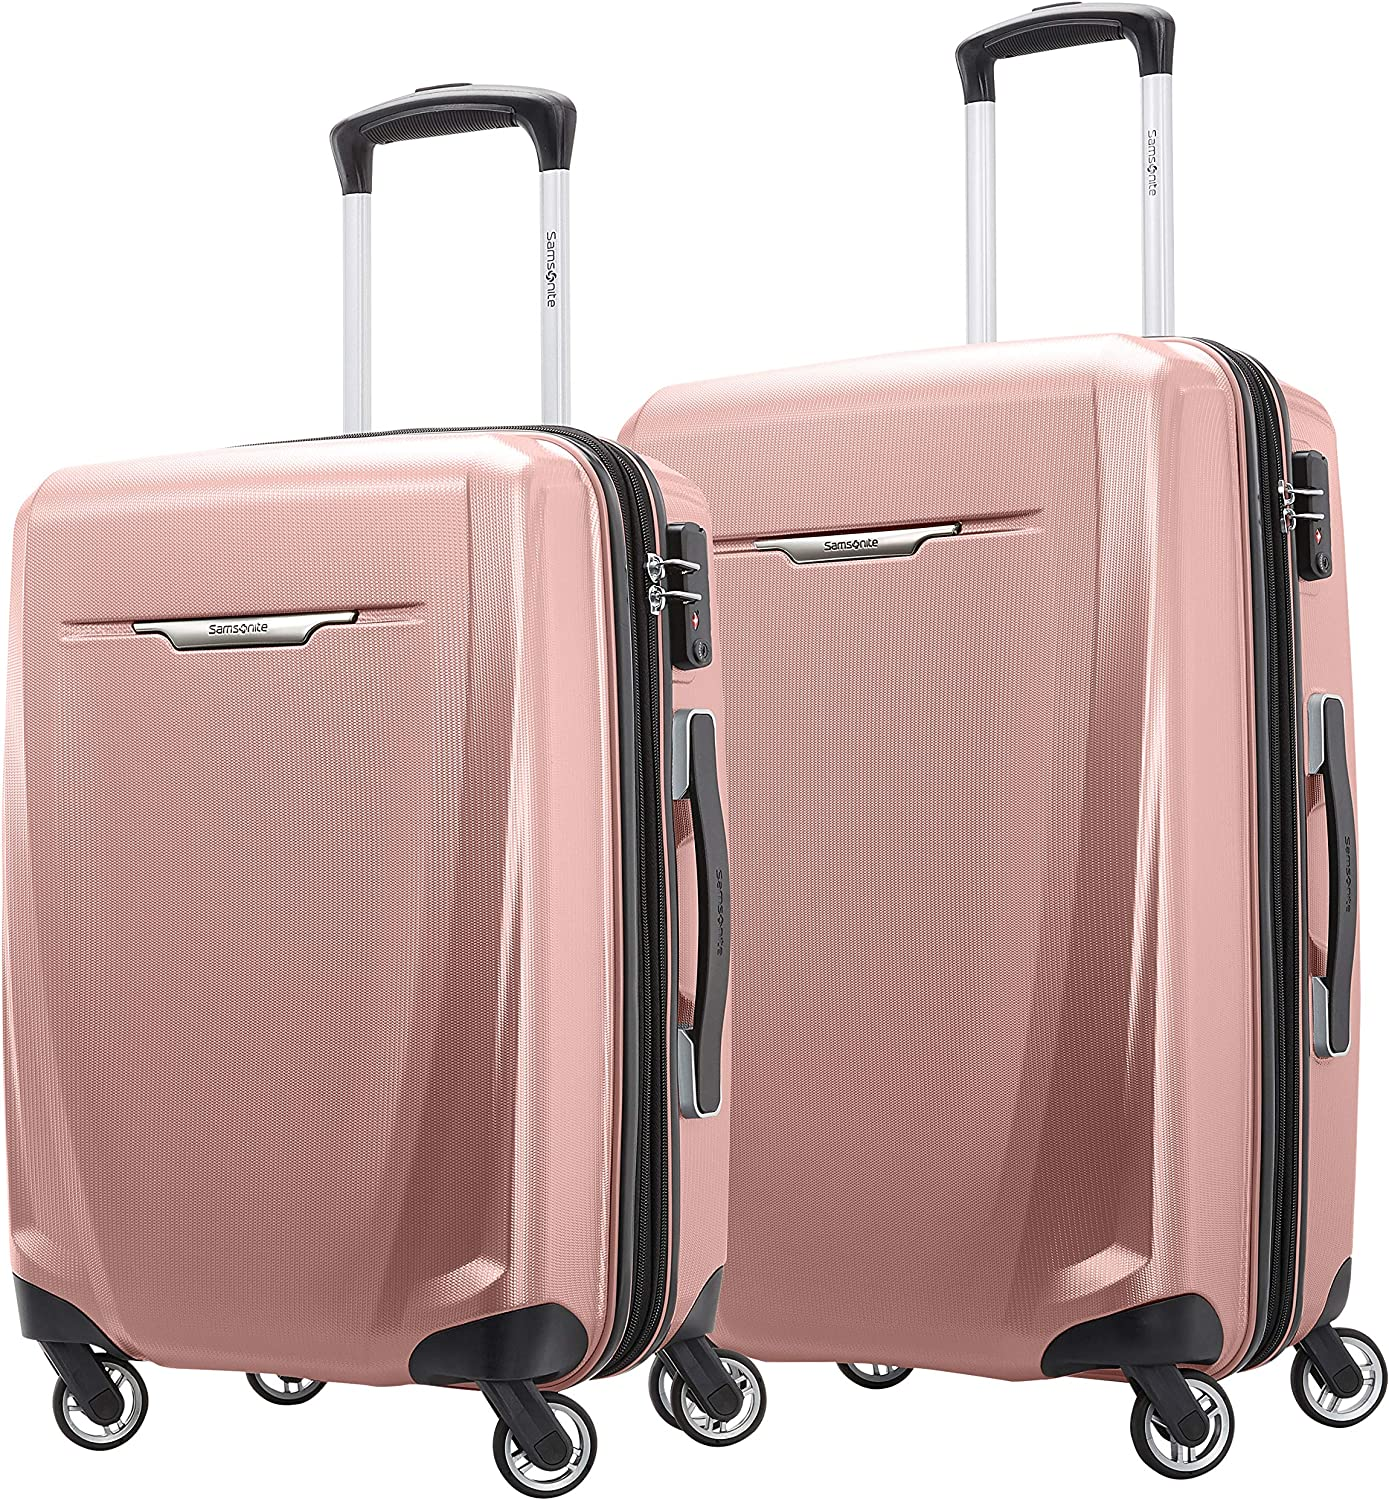 Samsonite Winfield 3 DLX Hardside Expandable Luggage with Spinners, Rose, 2-Piece Set (20/25)